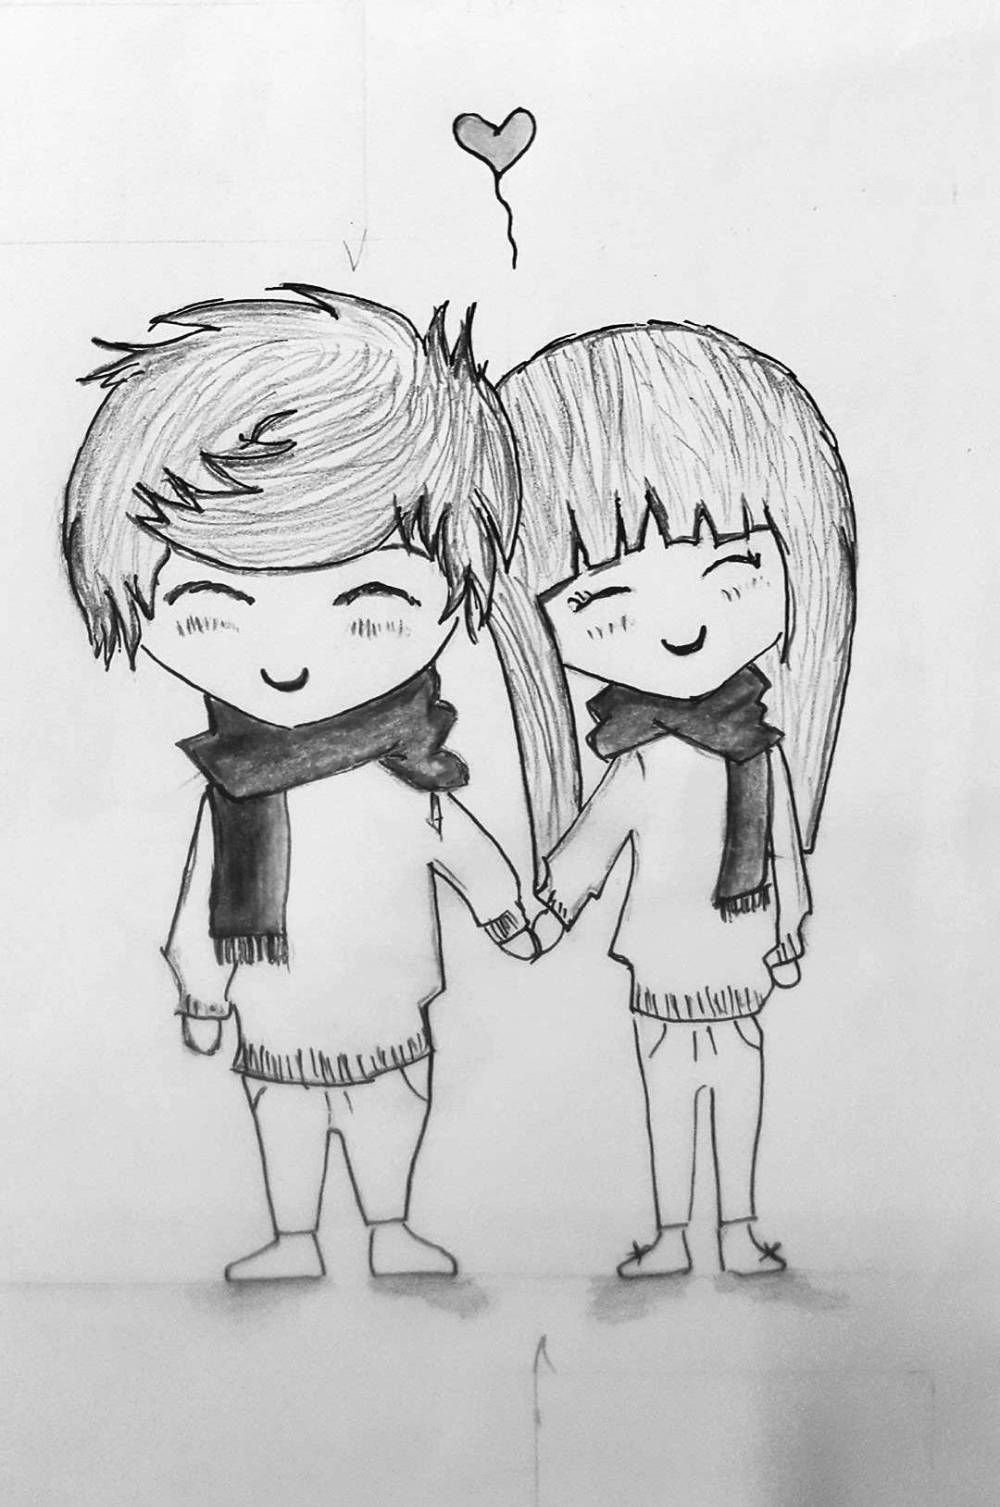 Cute couple sketch gallery couple cute sketch drawings art gallery